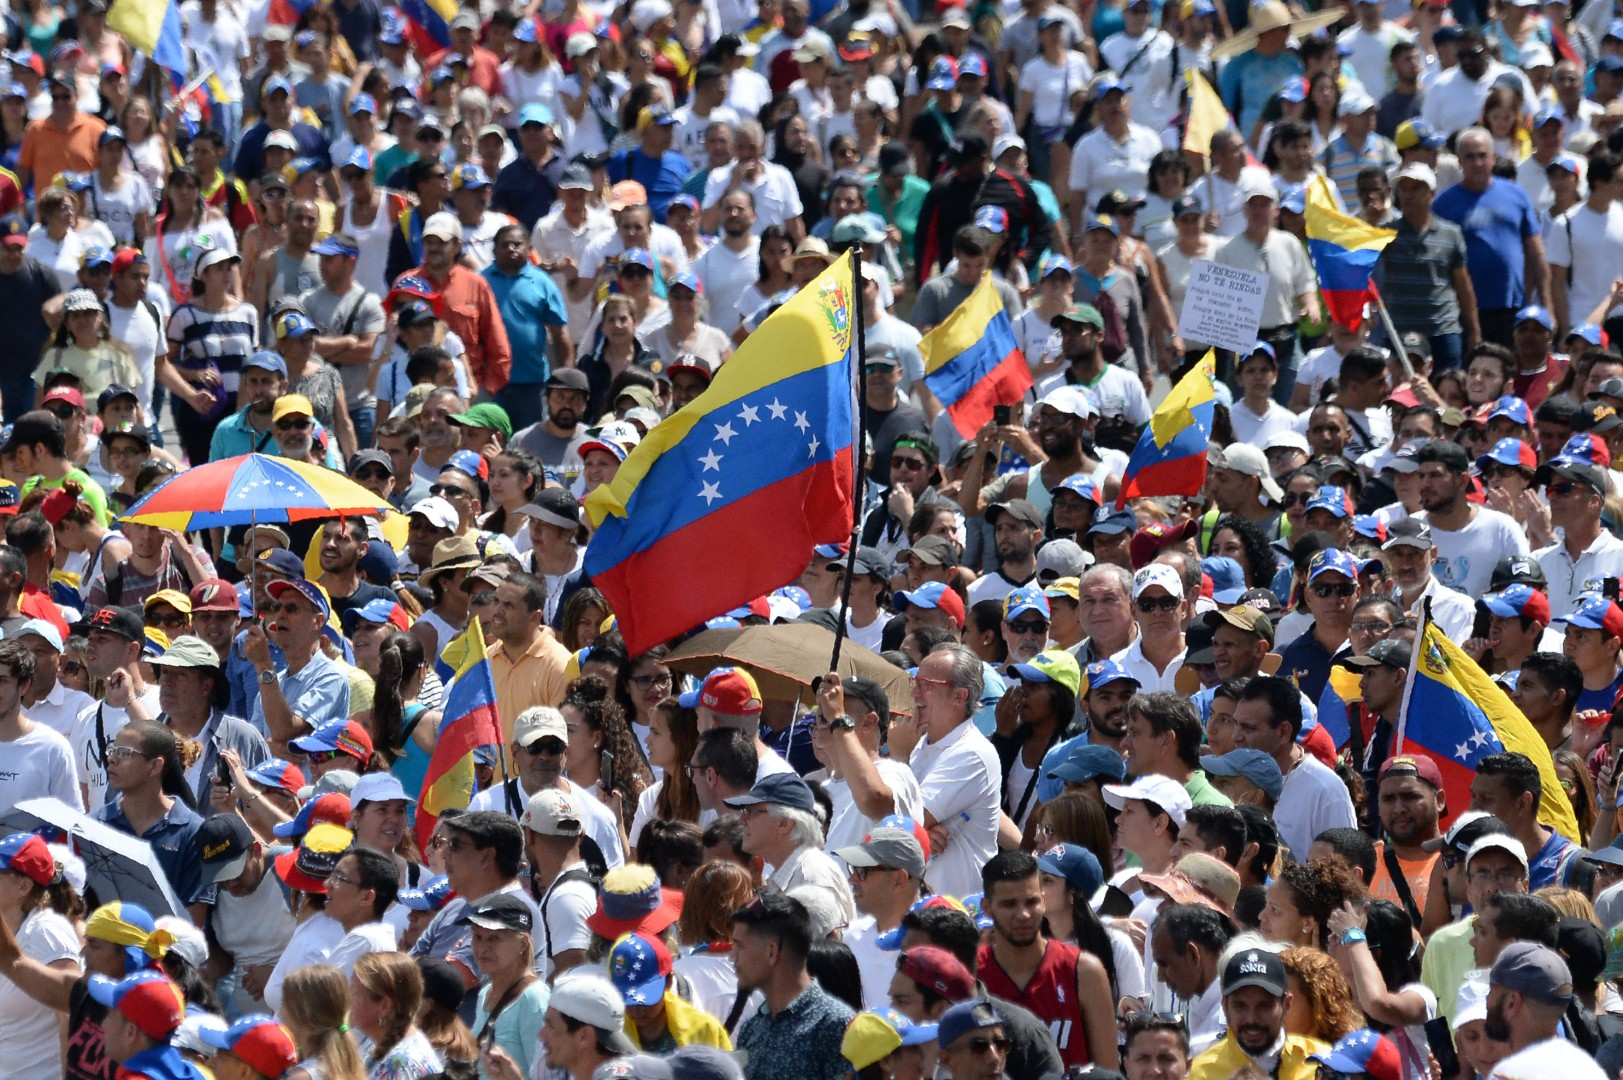 """(FILES) In this file photo taken on February 02, 2019 An opposition supporter waves a national flag during a gathering with Venezuelan opposition leader Juan Guaido, in Caracas on February 2, 2019. - President Donald Trump reiterated in comments broadcast February 3, 2019 that a US military intervention in Venezuela was """"an option,"""" as international pressure ramps up on embattled head of state Nicolas Maduro to step down. Asked in an interview with CBS's """"Face the Nation"""" what could lead the United States to use military force in the crisis-wracked country, the president declined to give a specific answer.""""But certainly it's something that's on the -- it's an option,"""" he said. The United States recognized Venezuelan opposition leader Juan Guaido as interim president on January 23, and is leading an international campaign to drive Maduro from office. (Photo by Federico PARRA / AFP)"""